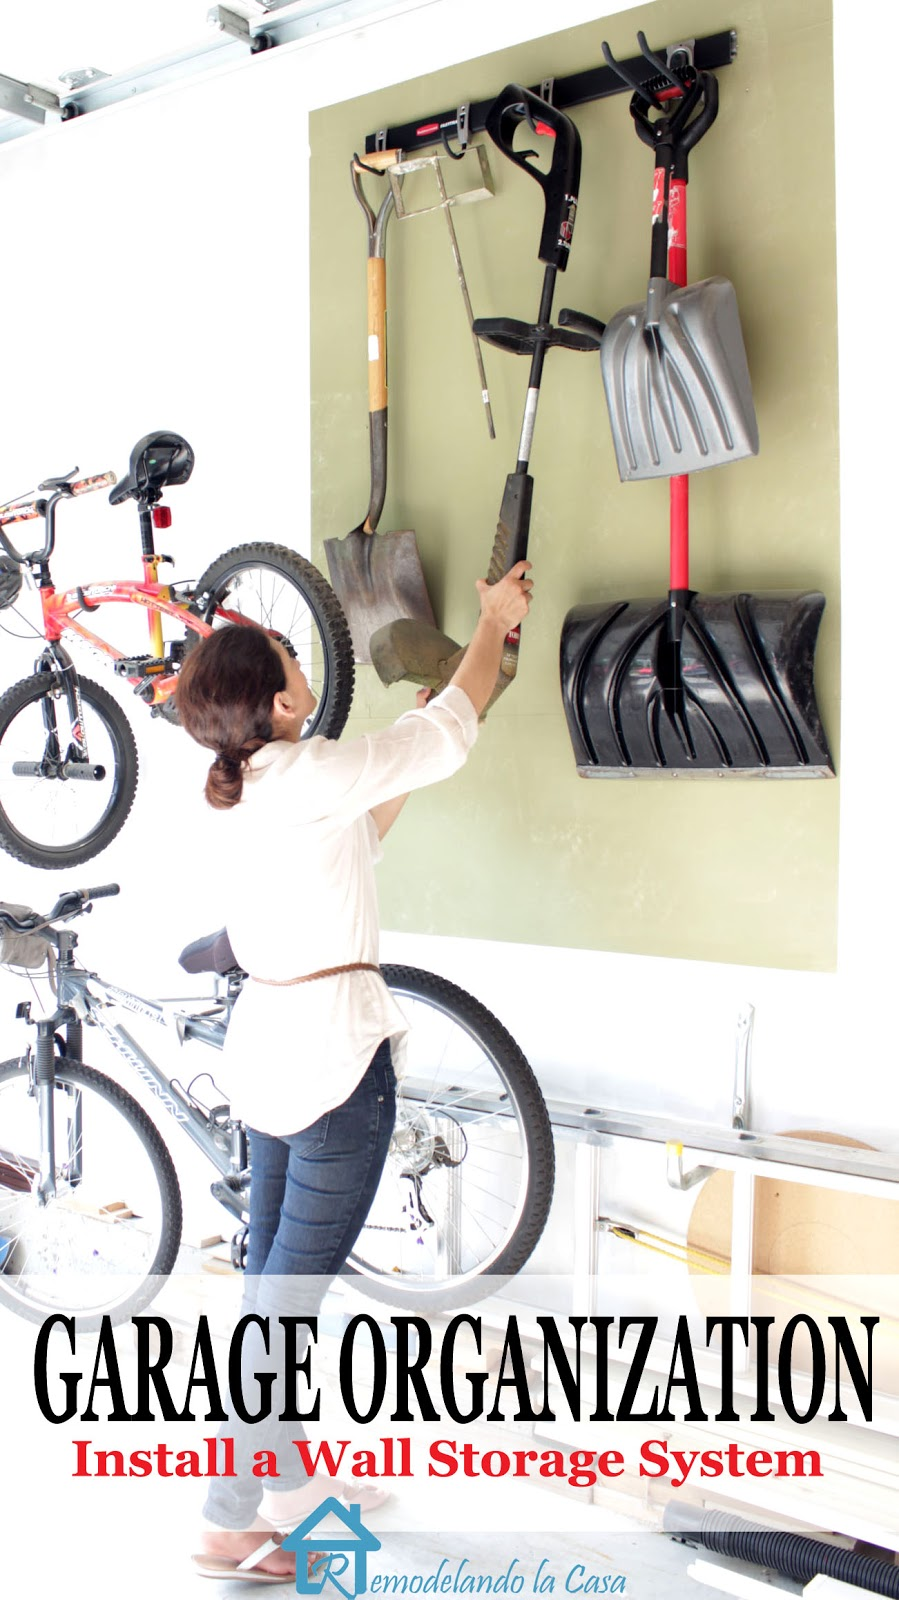 put organization to your tools in the garage with a wall storage system